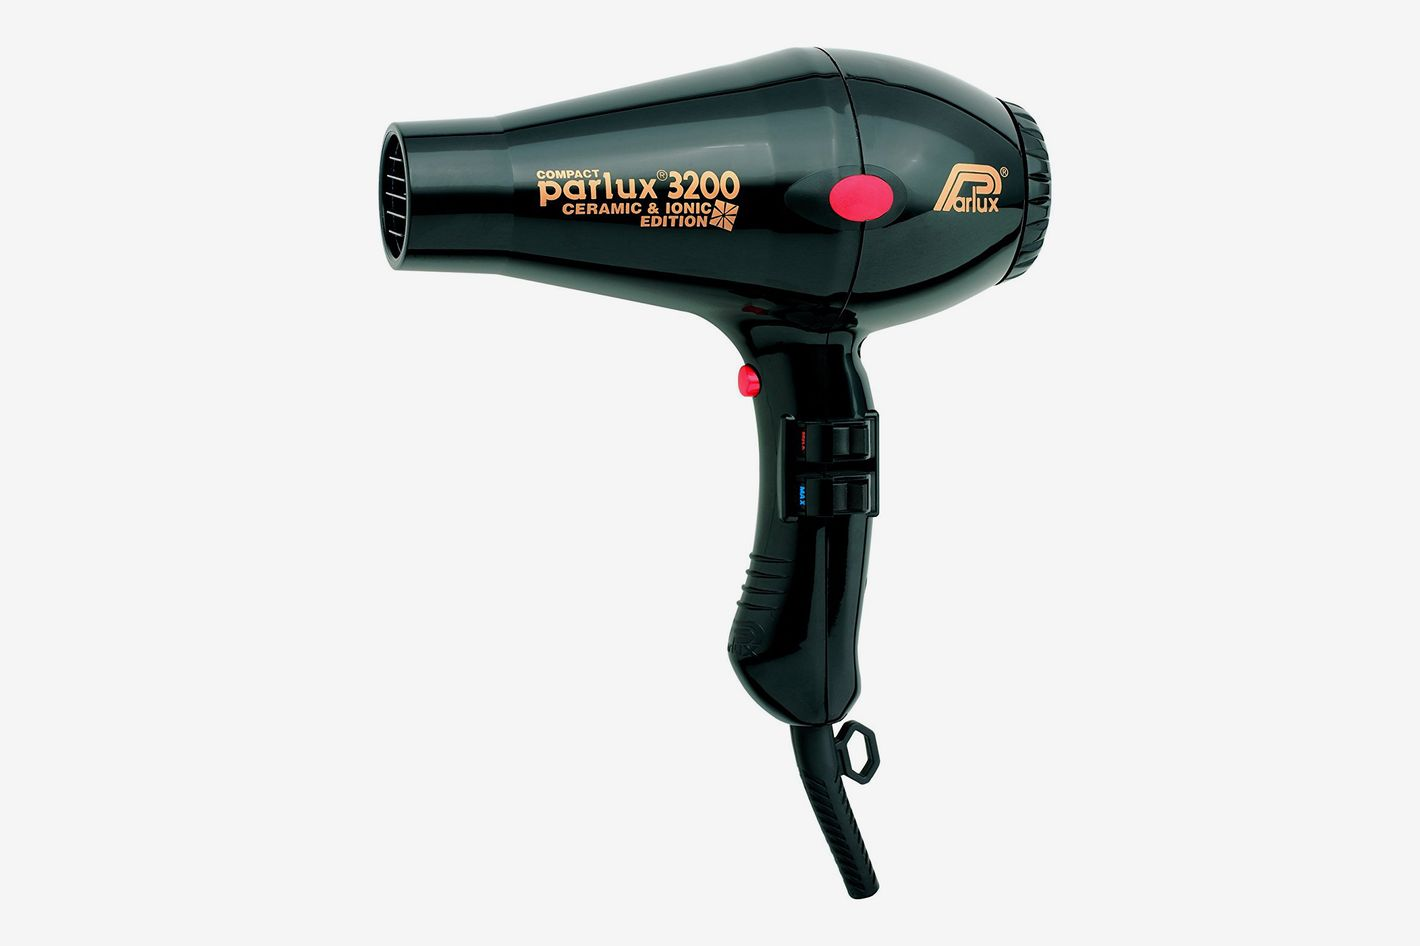 Parlux 3200 Ceramic Iconic Dryer